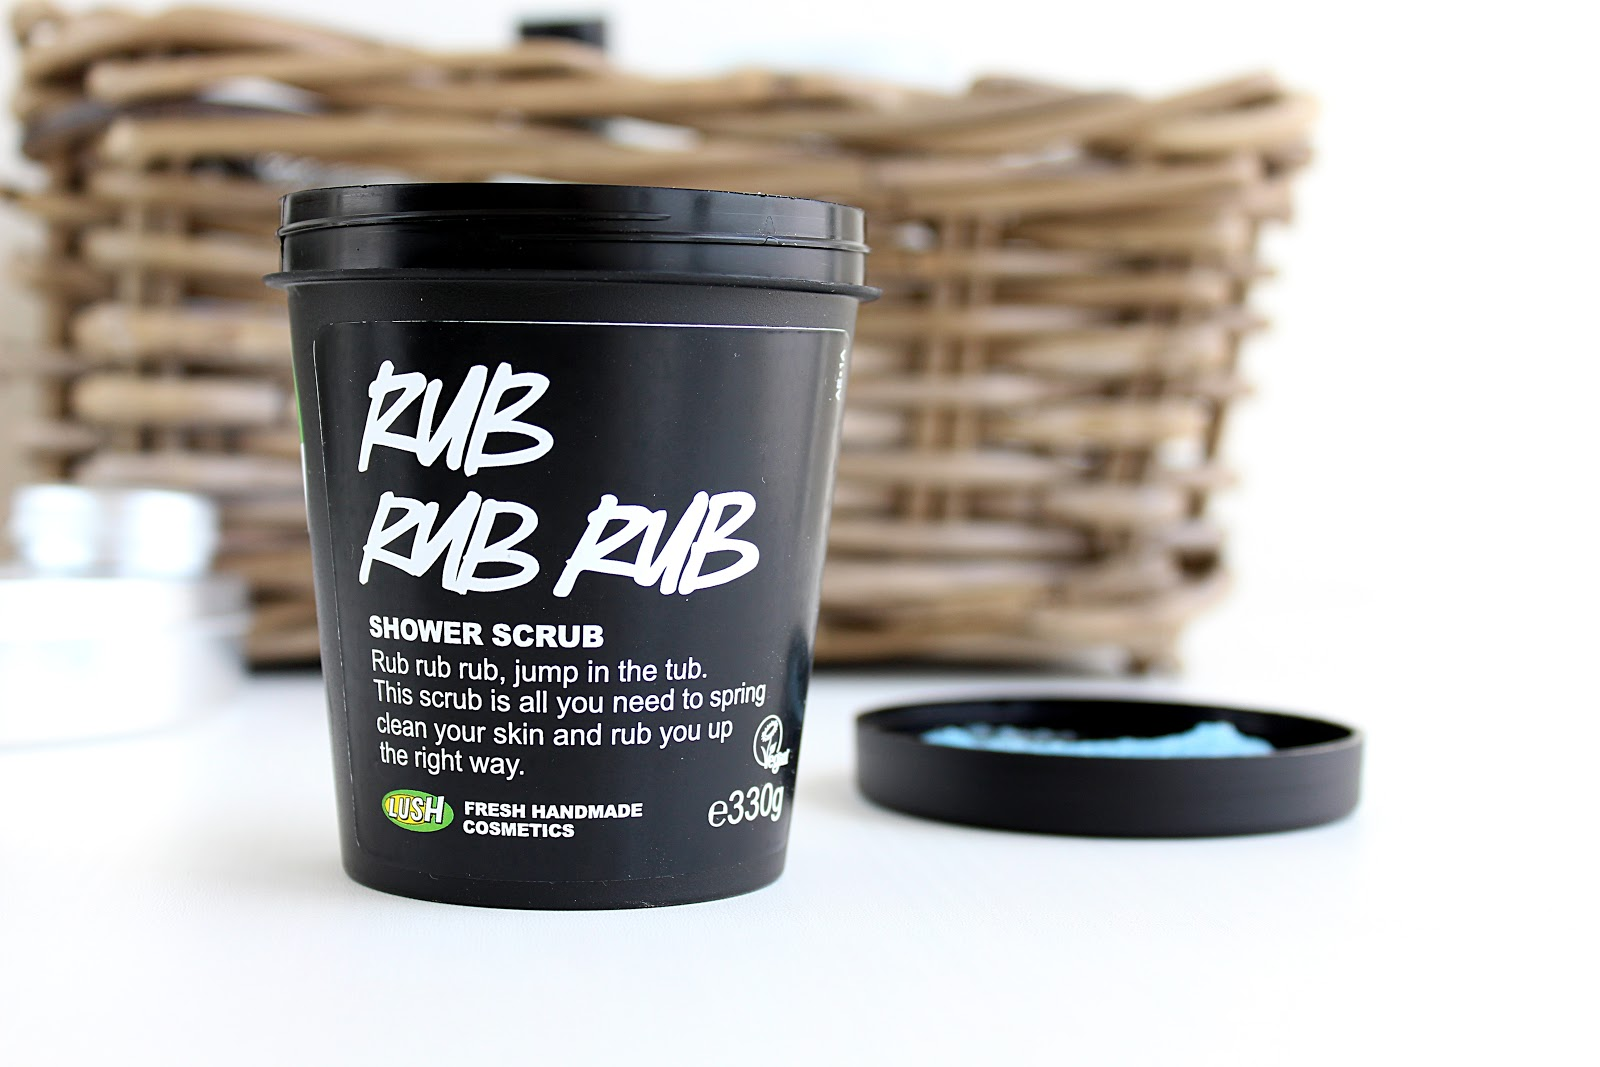 LUSH Rub Rub Rub Body Scrub Review, Life in Excess Blog